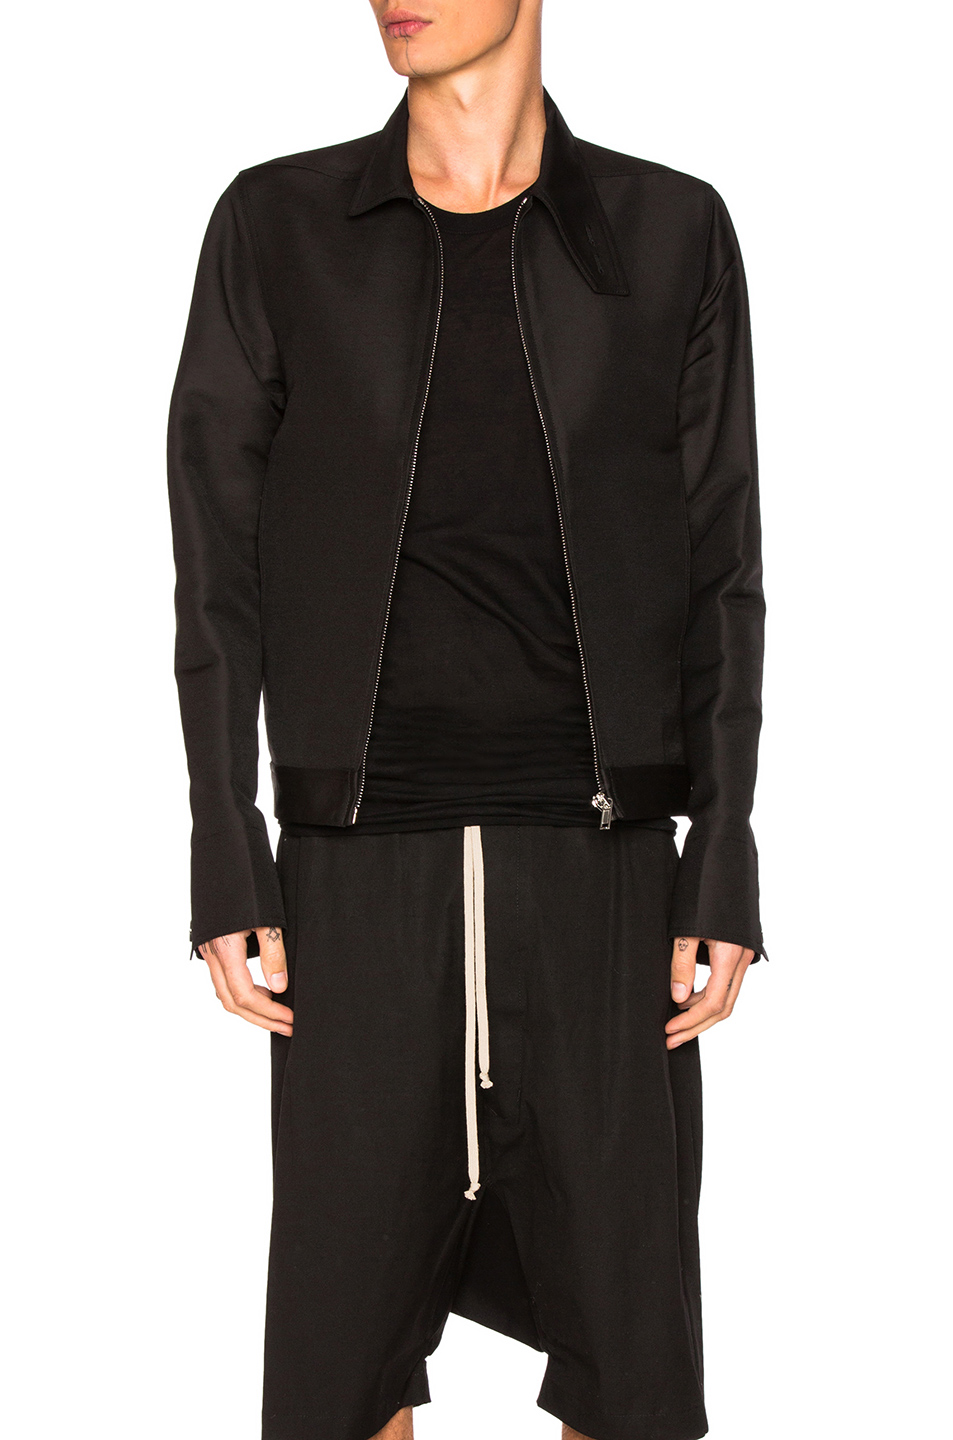 Rick Owens Brother Jacket in Black